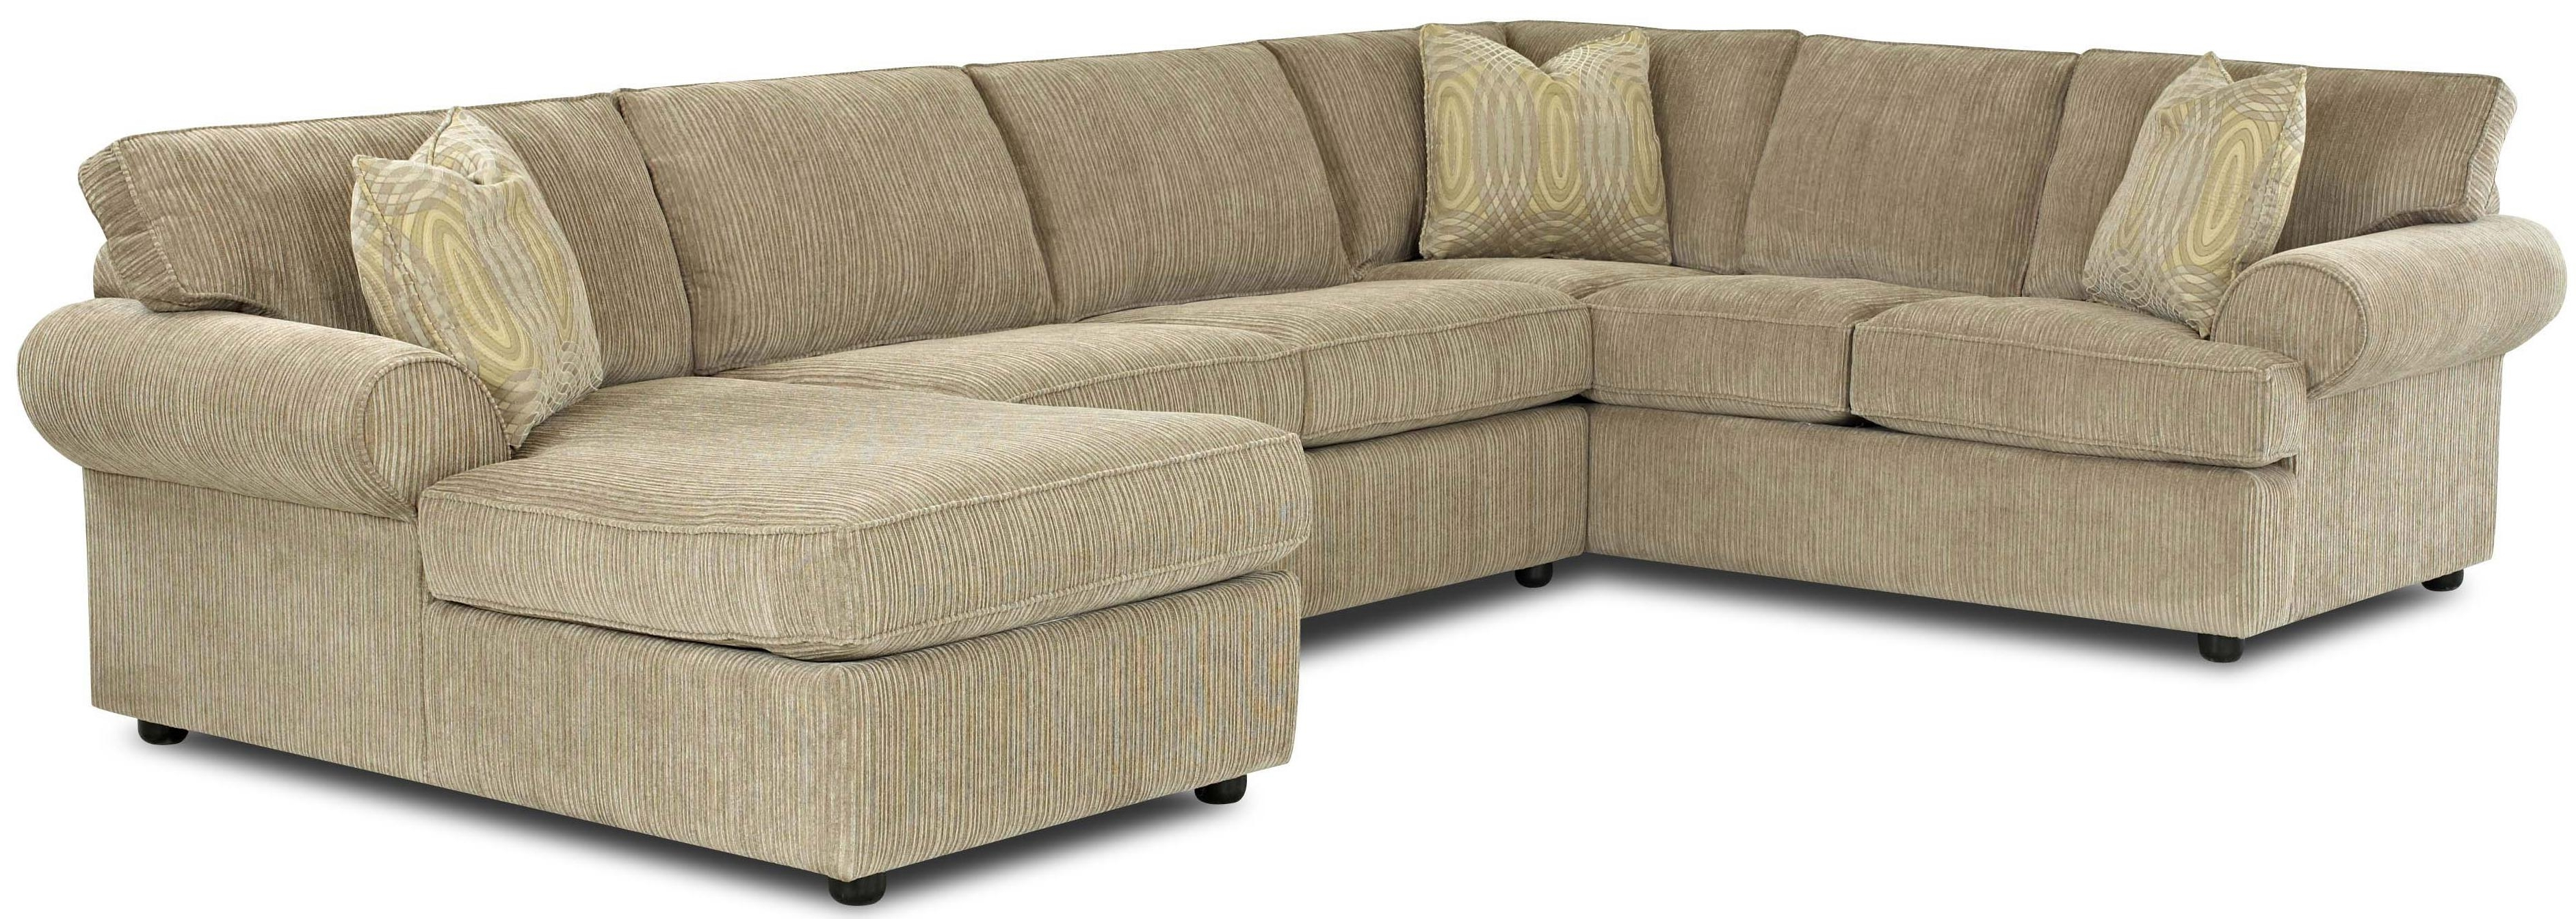 Preferred Sectional Sofas With Chaise Throughout Inspirational Sectional Sofas With Chaise 97 For Living Room Sofa (View 9 of 20)